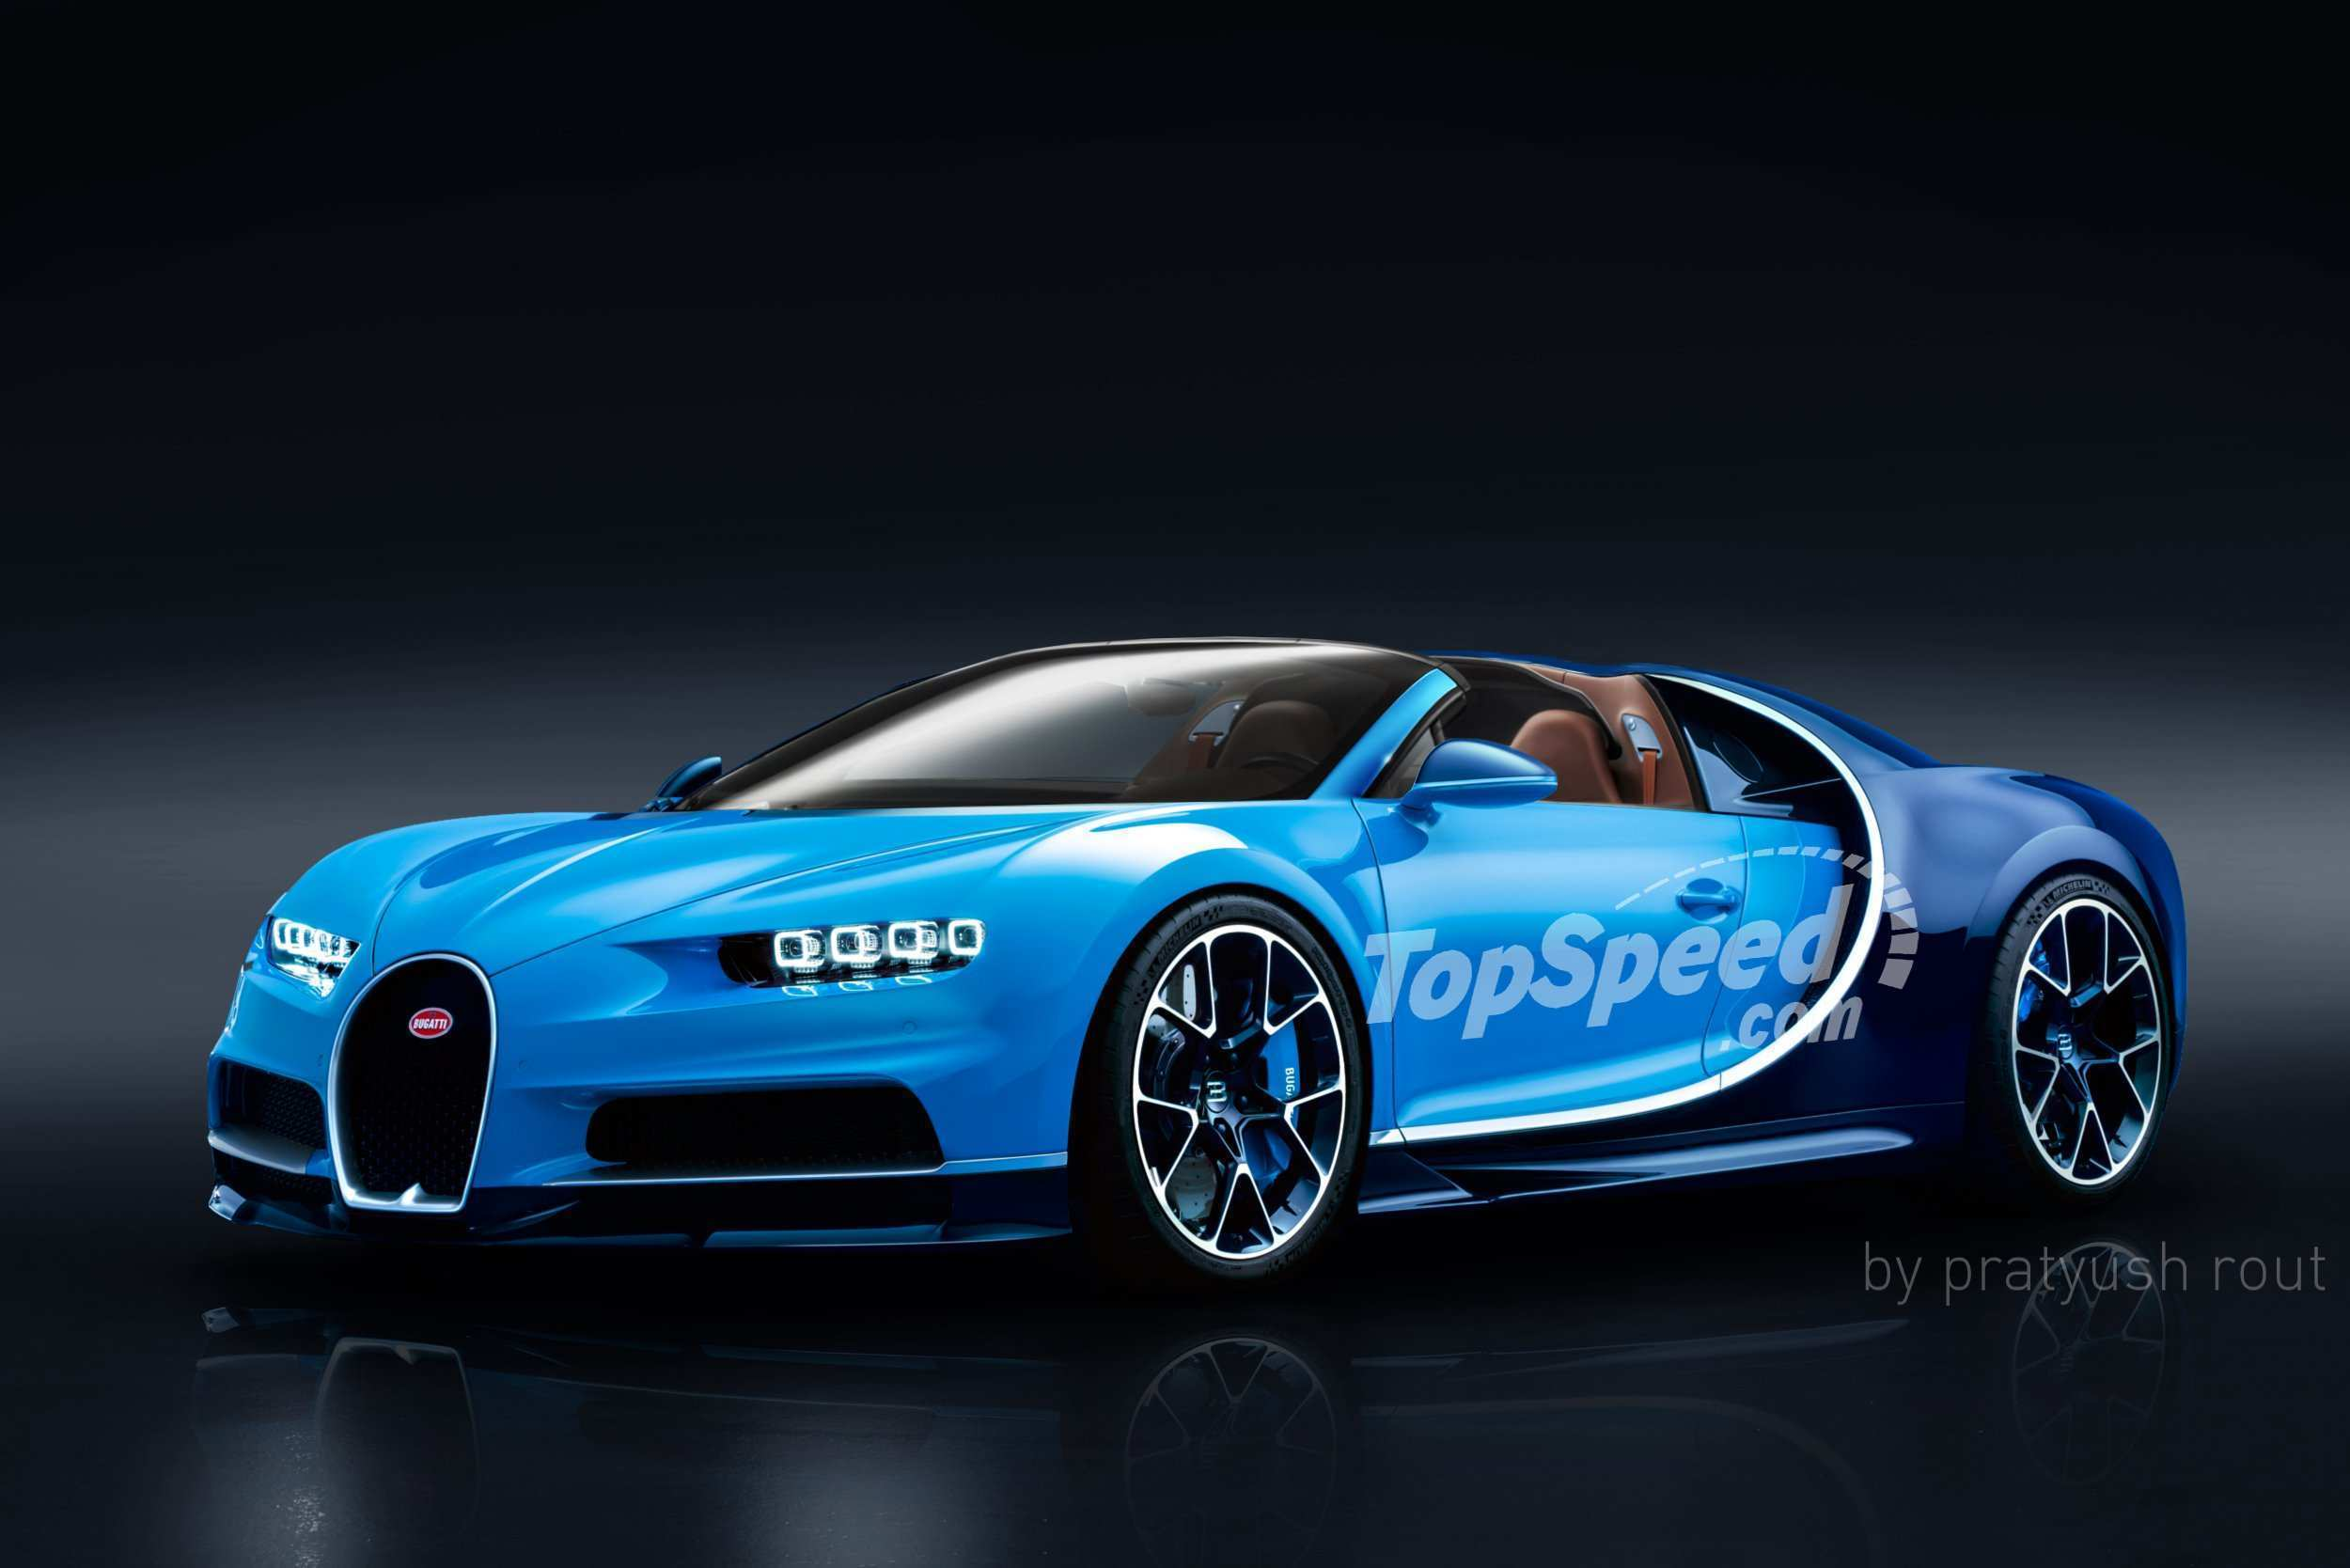 43 Best Review 2020 Bugatti Veyron Price Engine with 2020 Bugatti Veyron Price